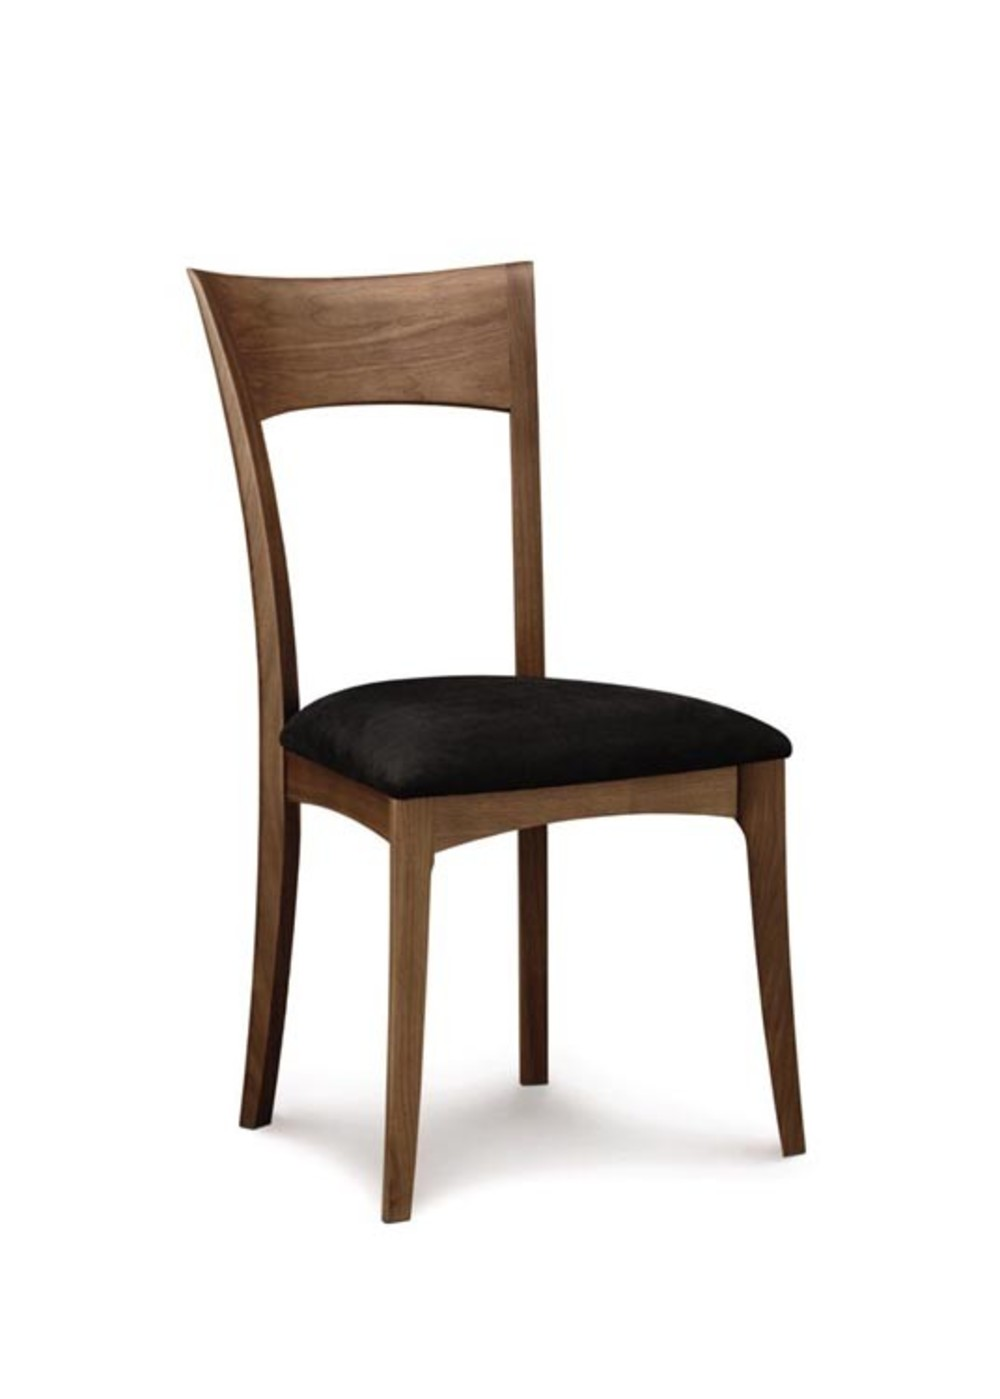 Copeland Furniture - Ingrid Side Chair with Upholstered Seat